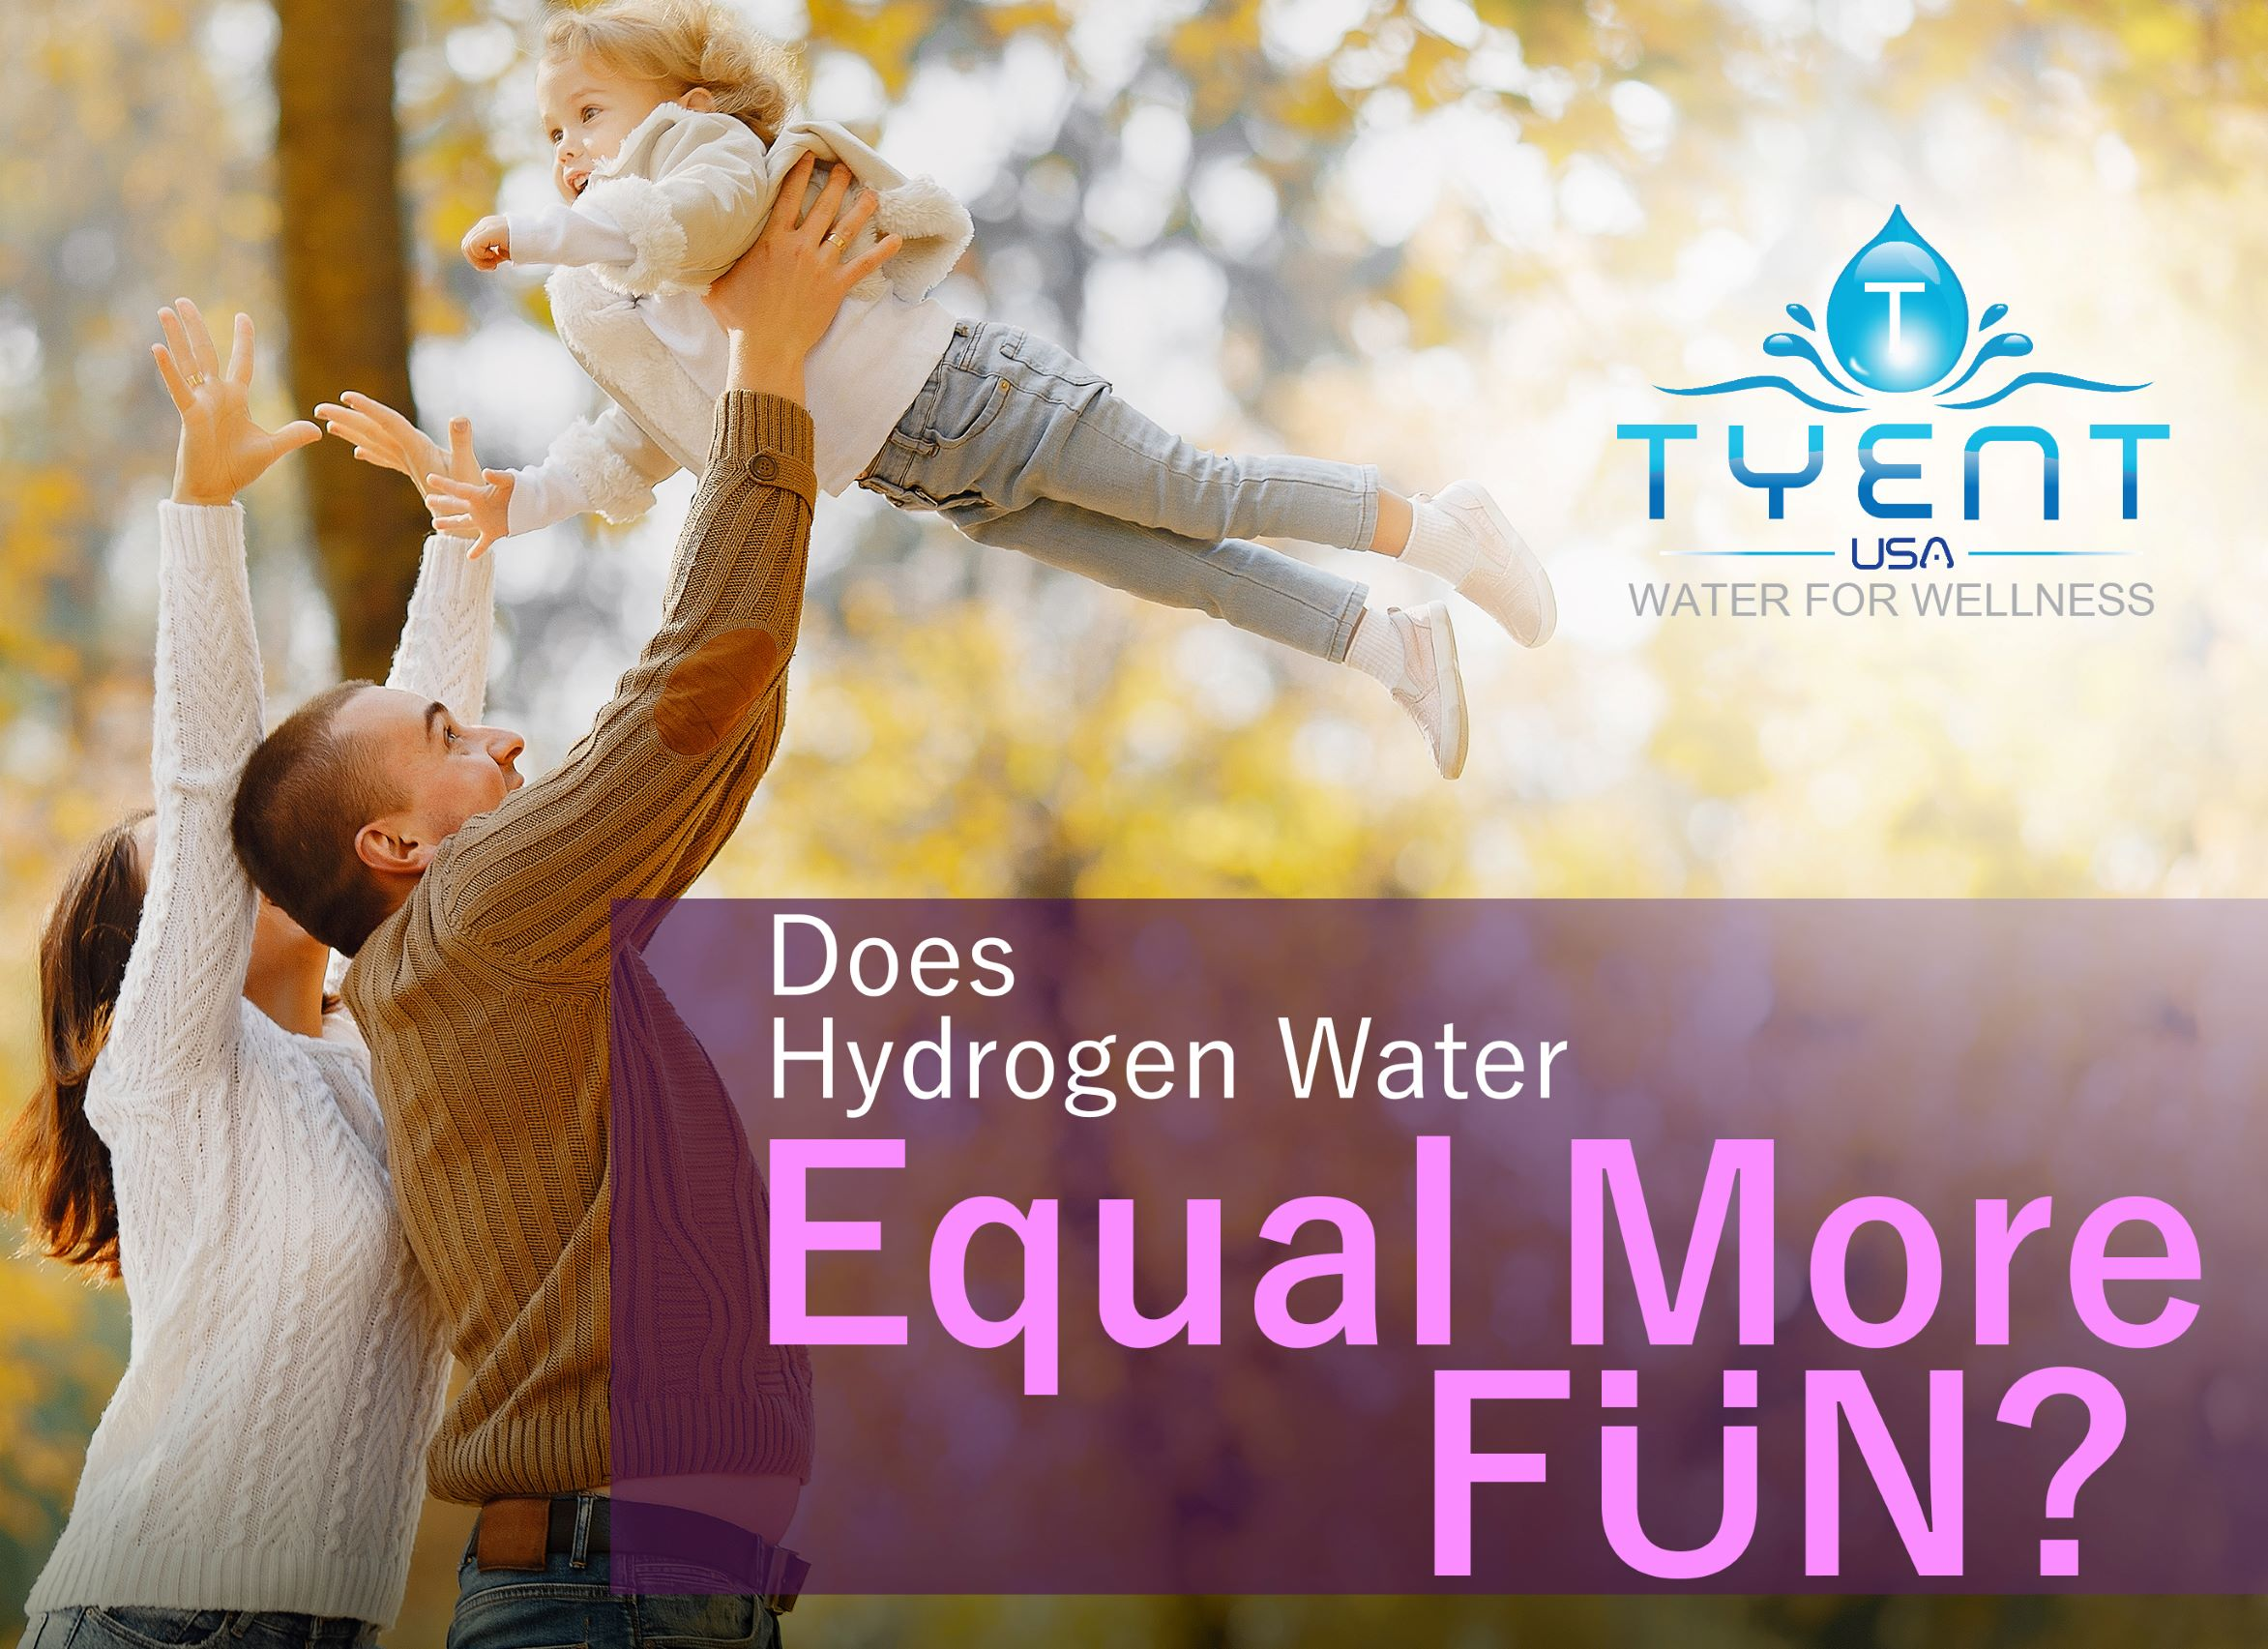 Does Hydrogen Water Equal More Fun